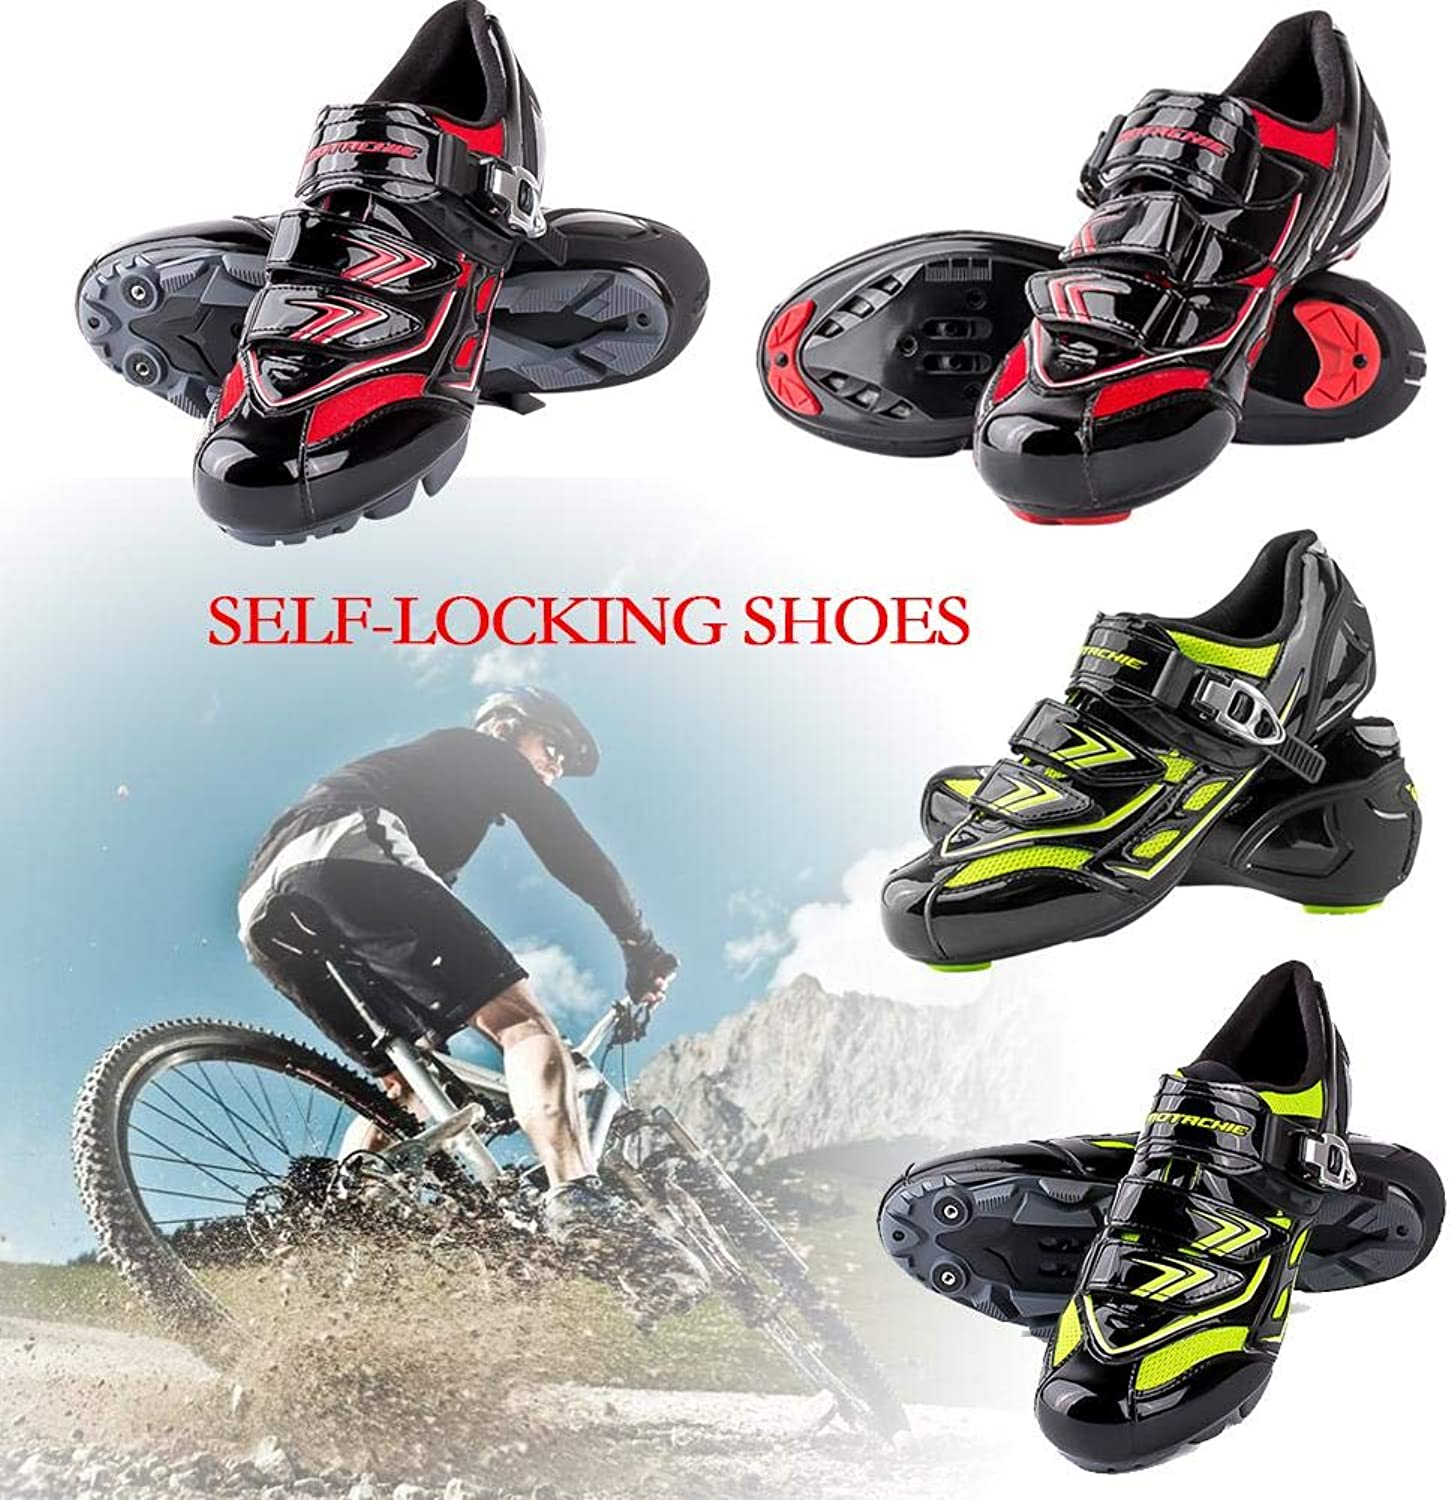 Ridecle Road Cycling Bike shoes, Mens Waterproof Sweat Absorbent Breathable Wear Resistant Non-slip Lightweight Bike Self-locking shoes For MTB Cycle Bicycle Riding Outdoor Sports